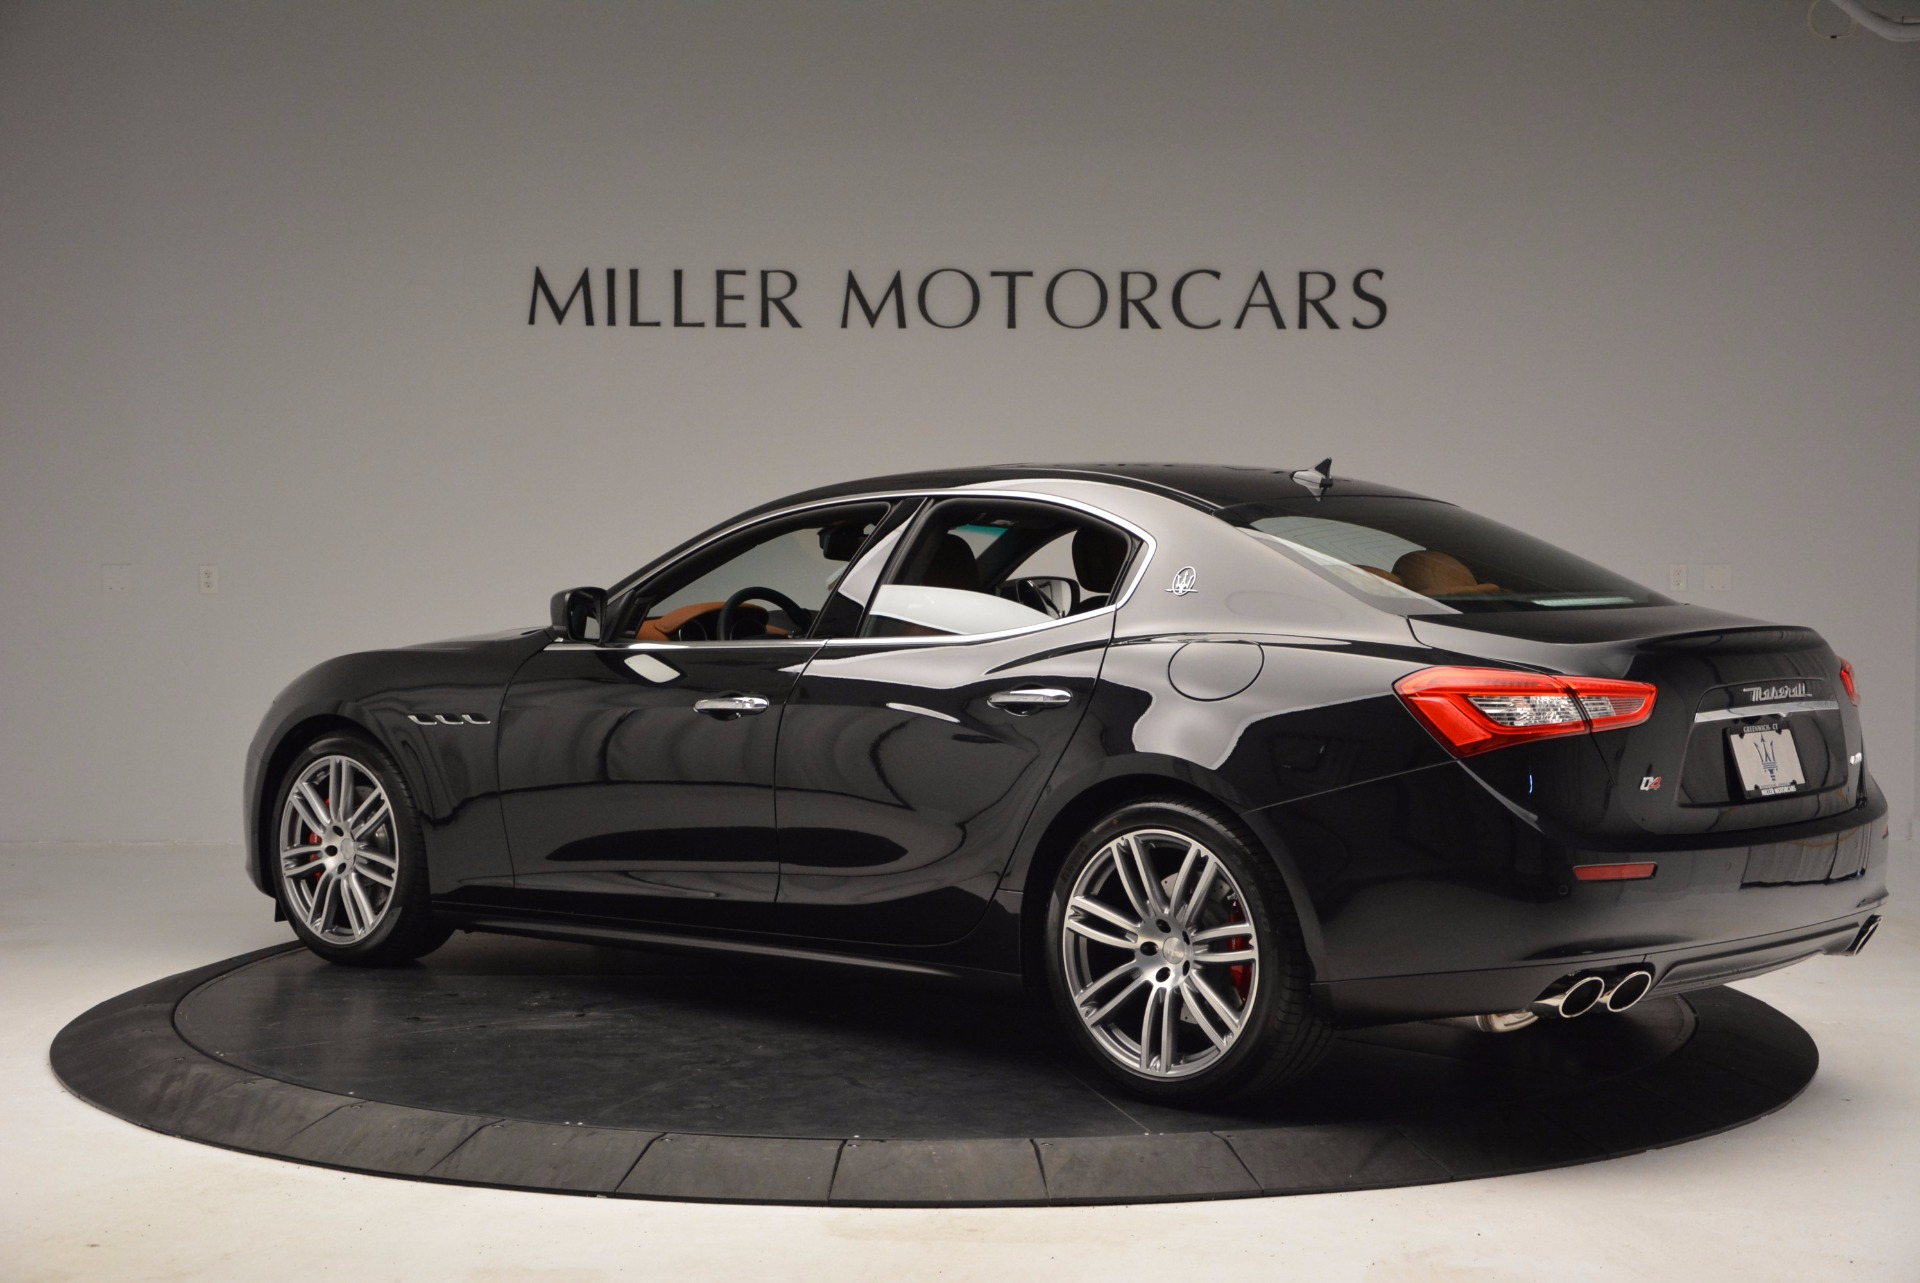 Used 2014 Maserati Ghibli S Q4 For Sale In Greenwich, CT. Alfa Romeo of Greenwich, 7281 1587_p4